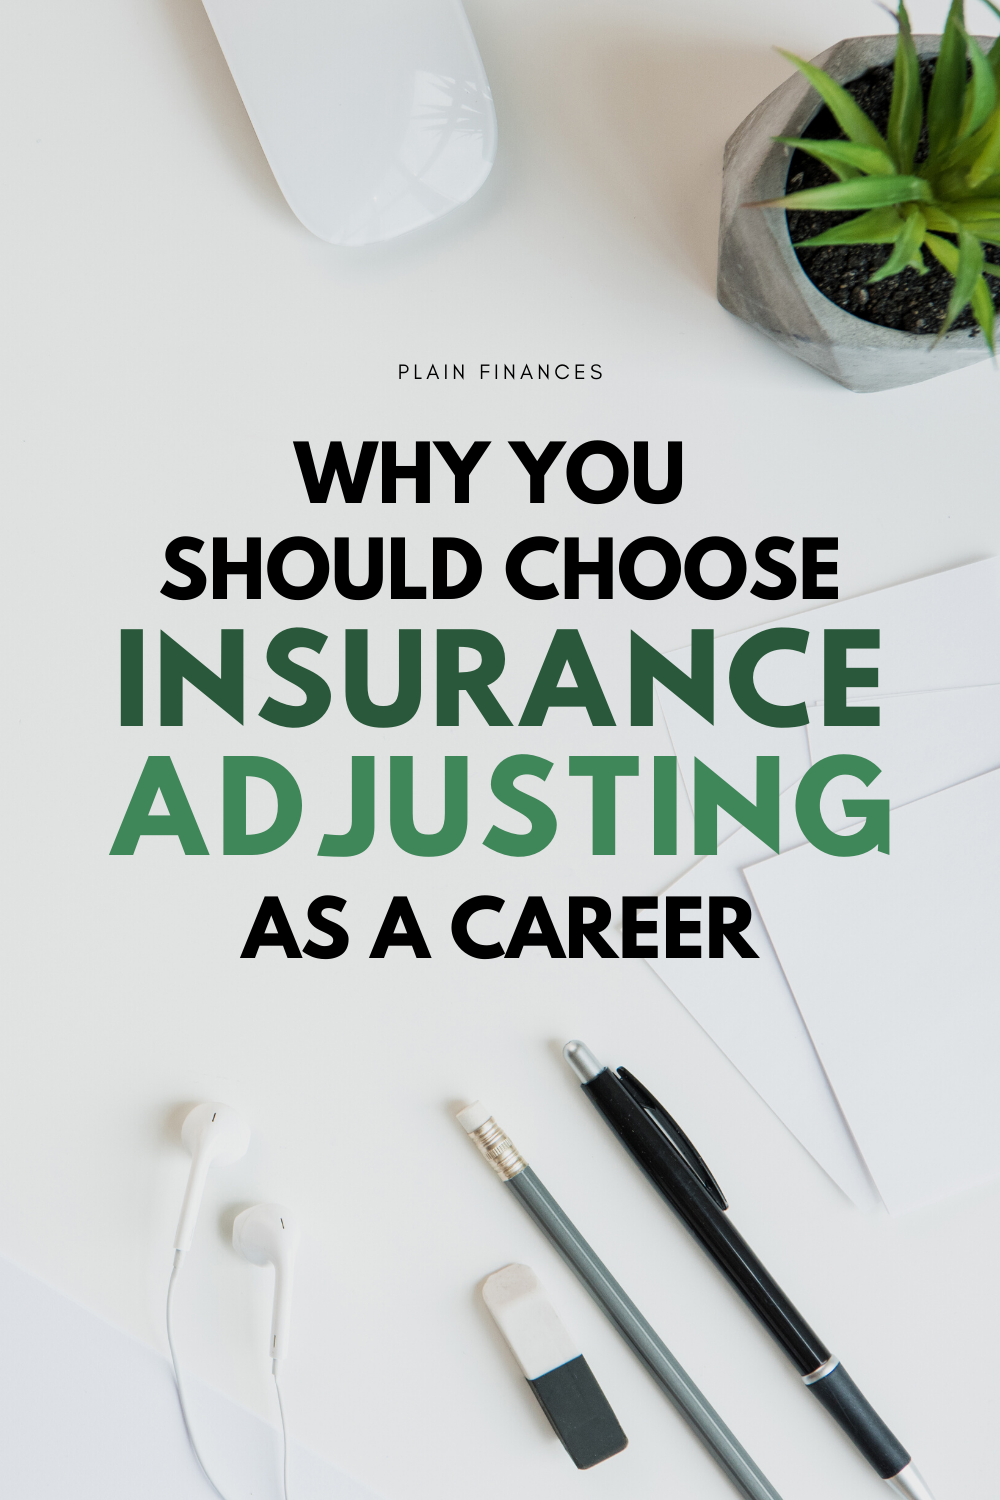 Insurance Adjuster A Rewarding Career in the Insurance